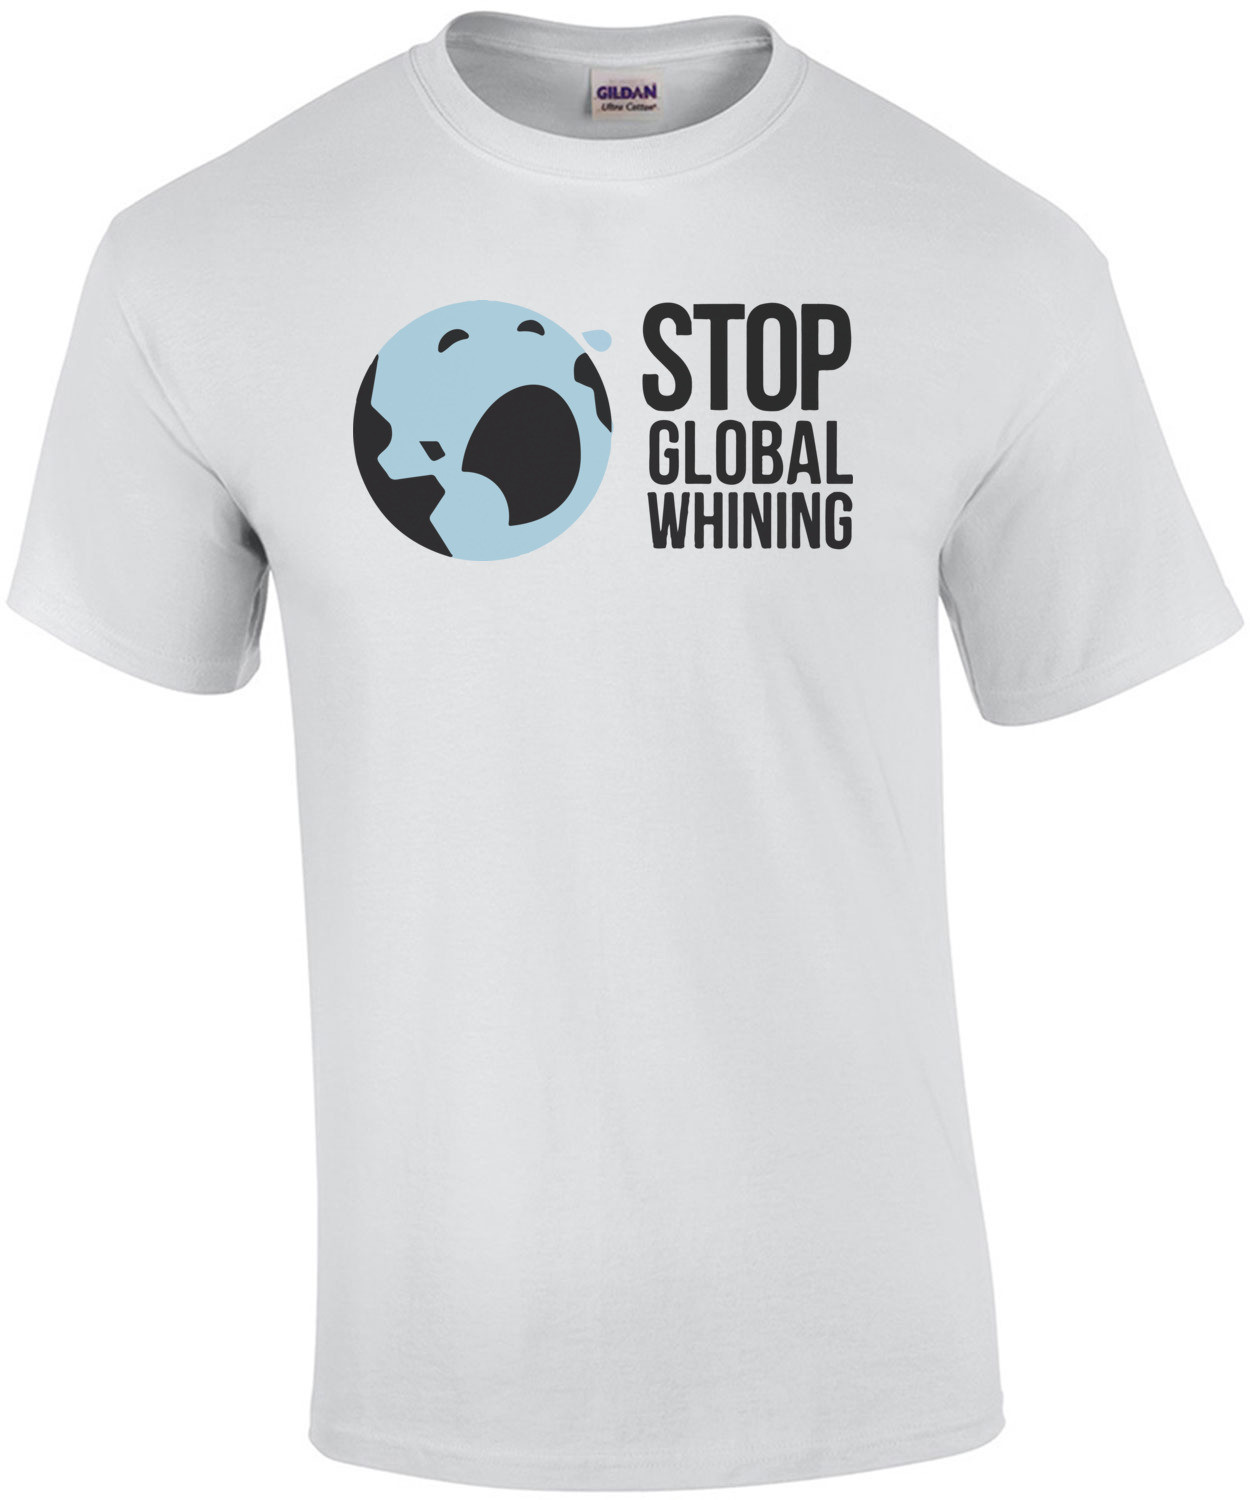 Stop Global Whining - Funny T-Shirt